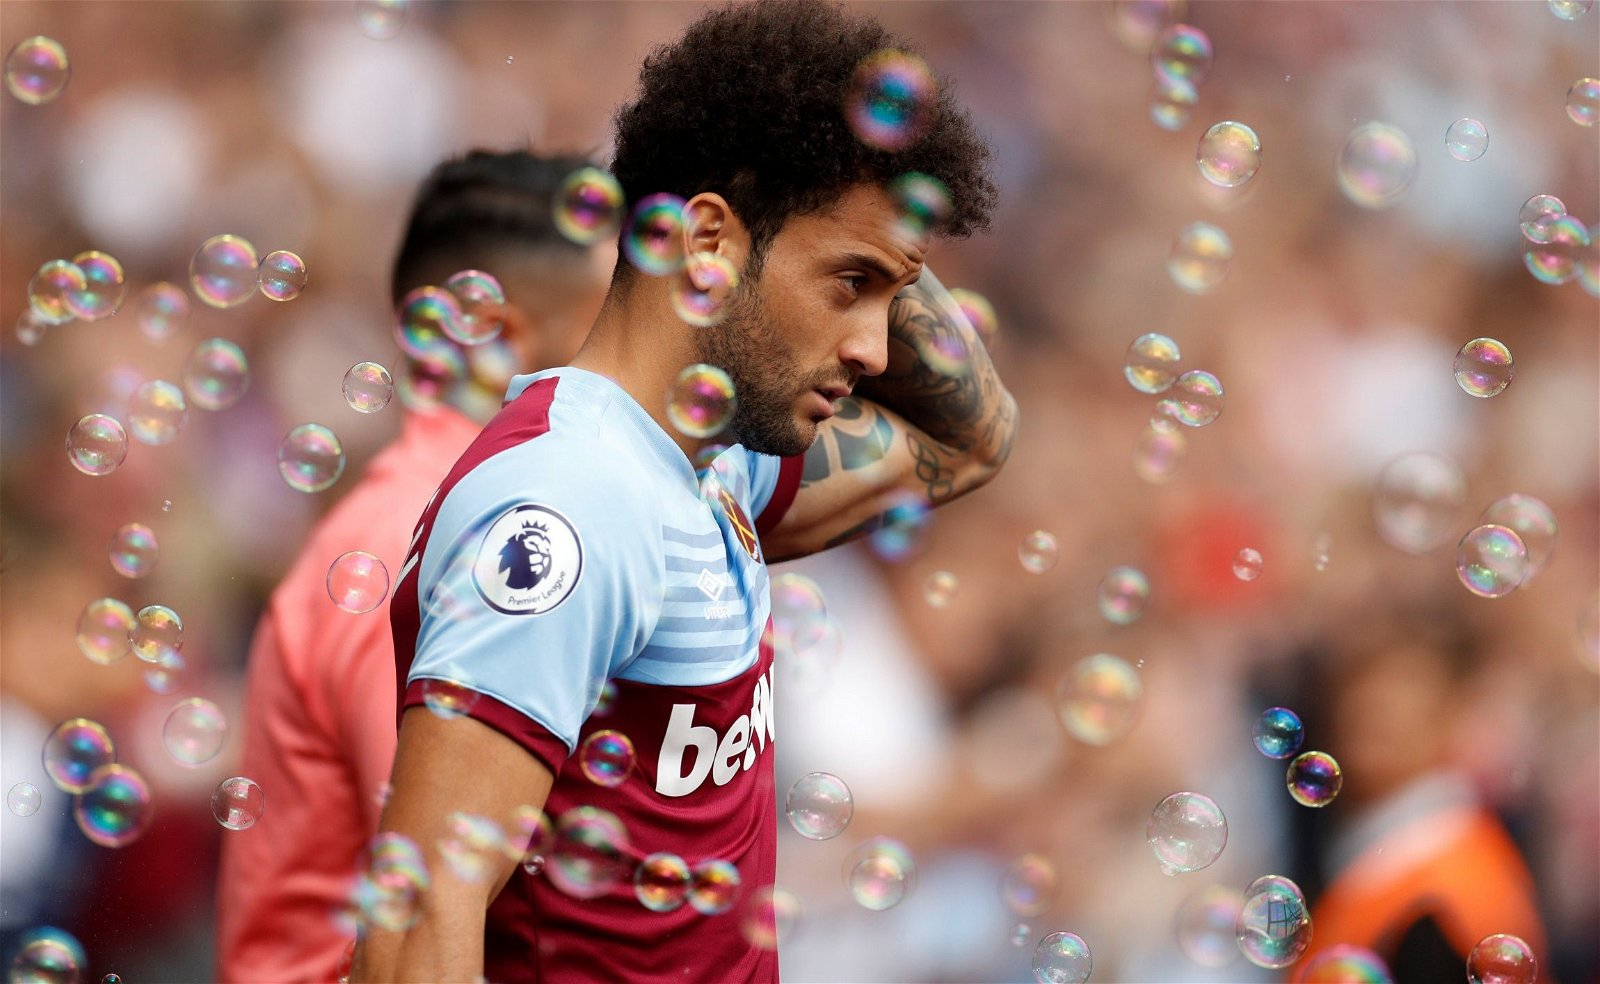 West Ham attacker Felipe Anderson prior to the clash against Man City e1565445339253 - Opinion: How the recent market decline could affect West Ham's summer business